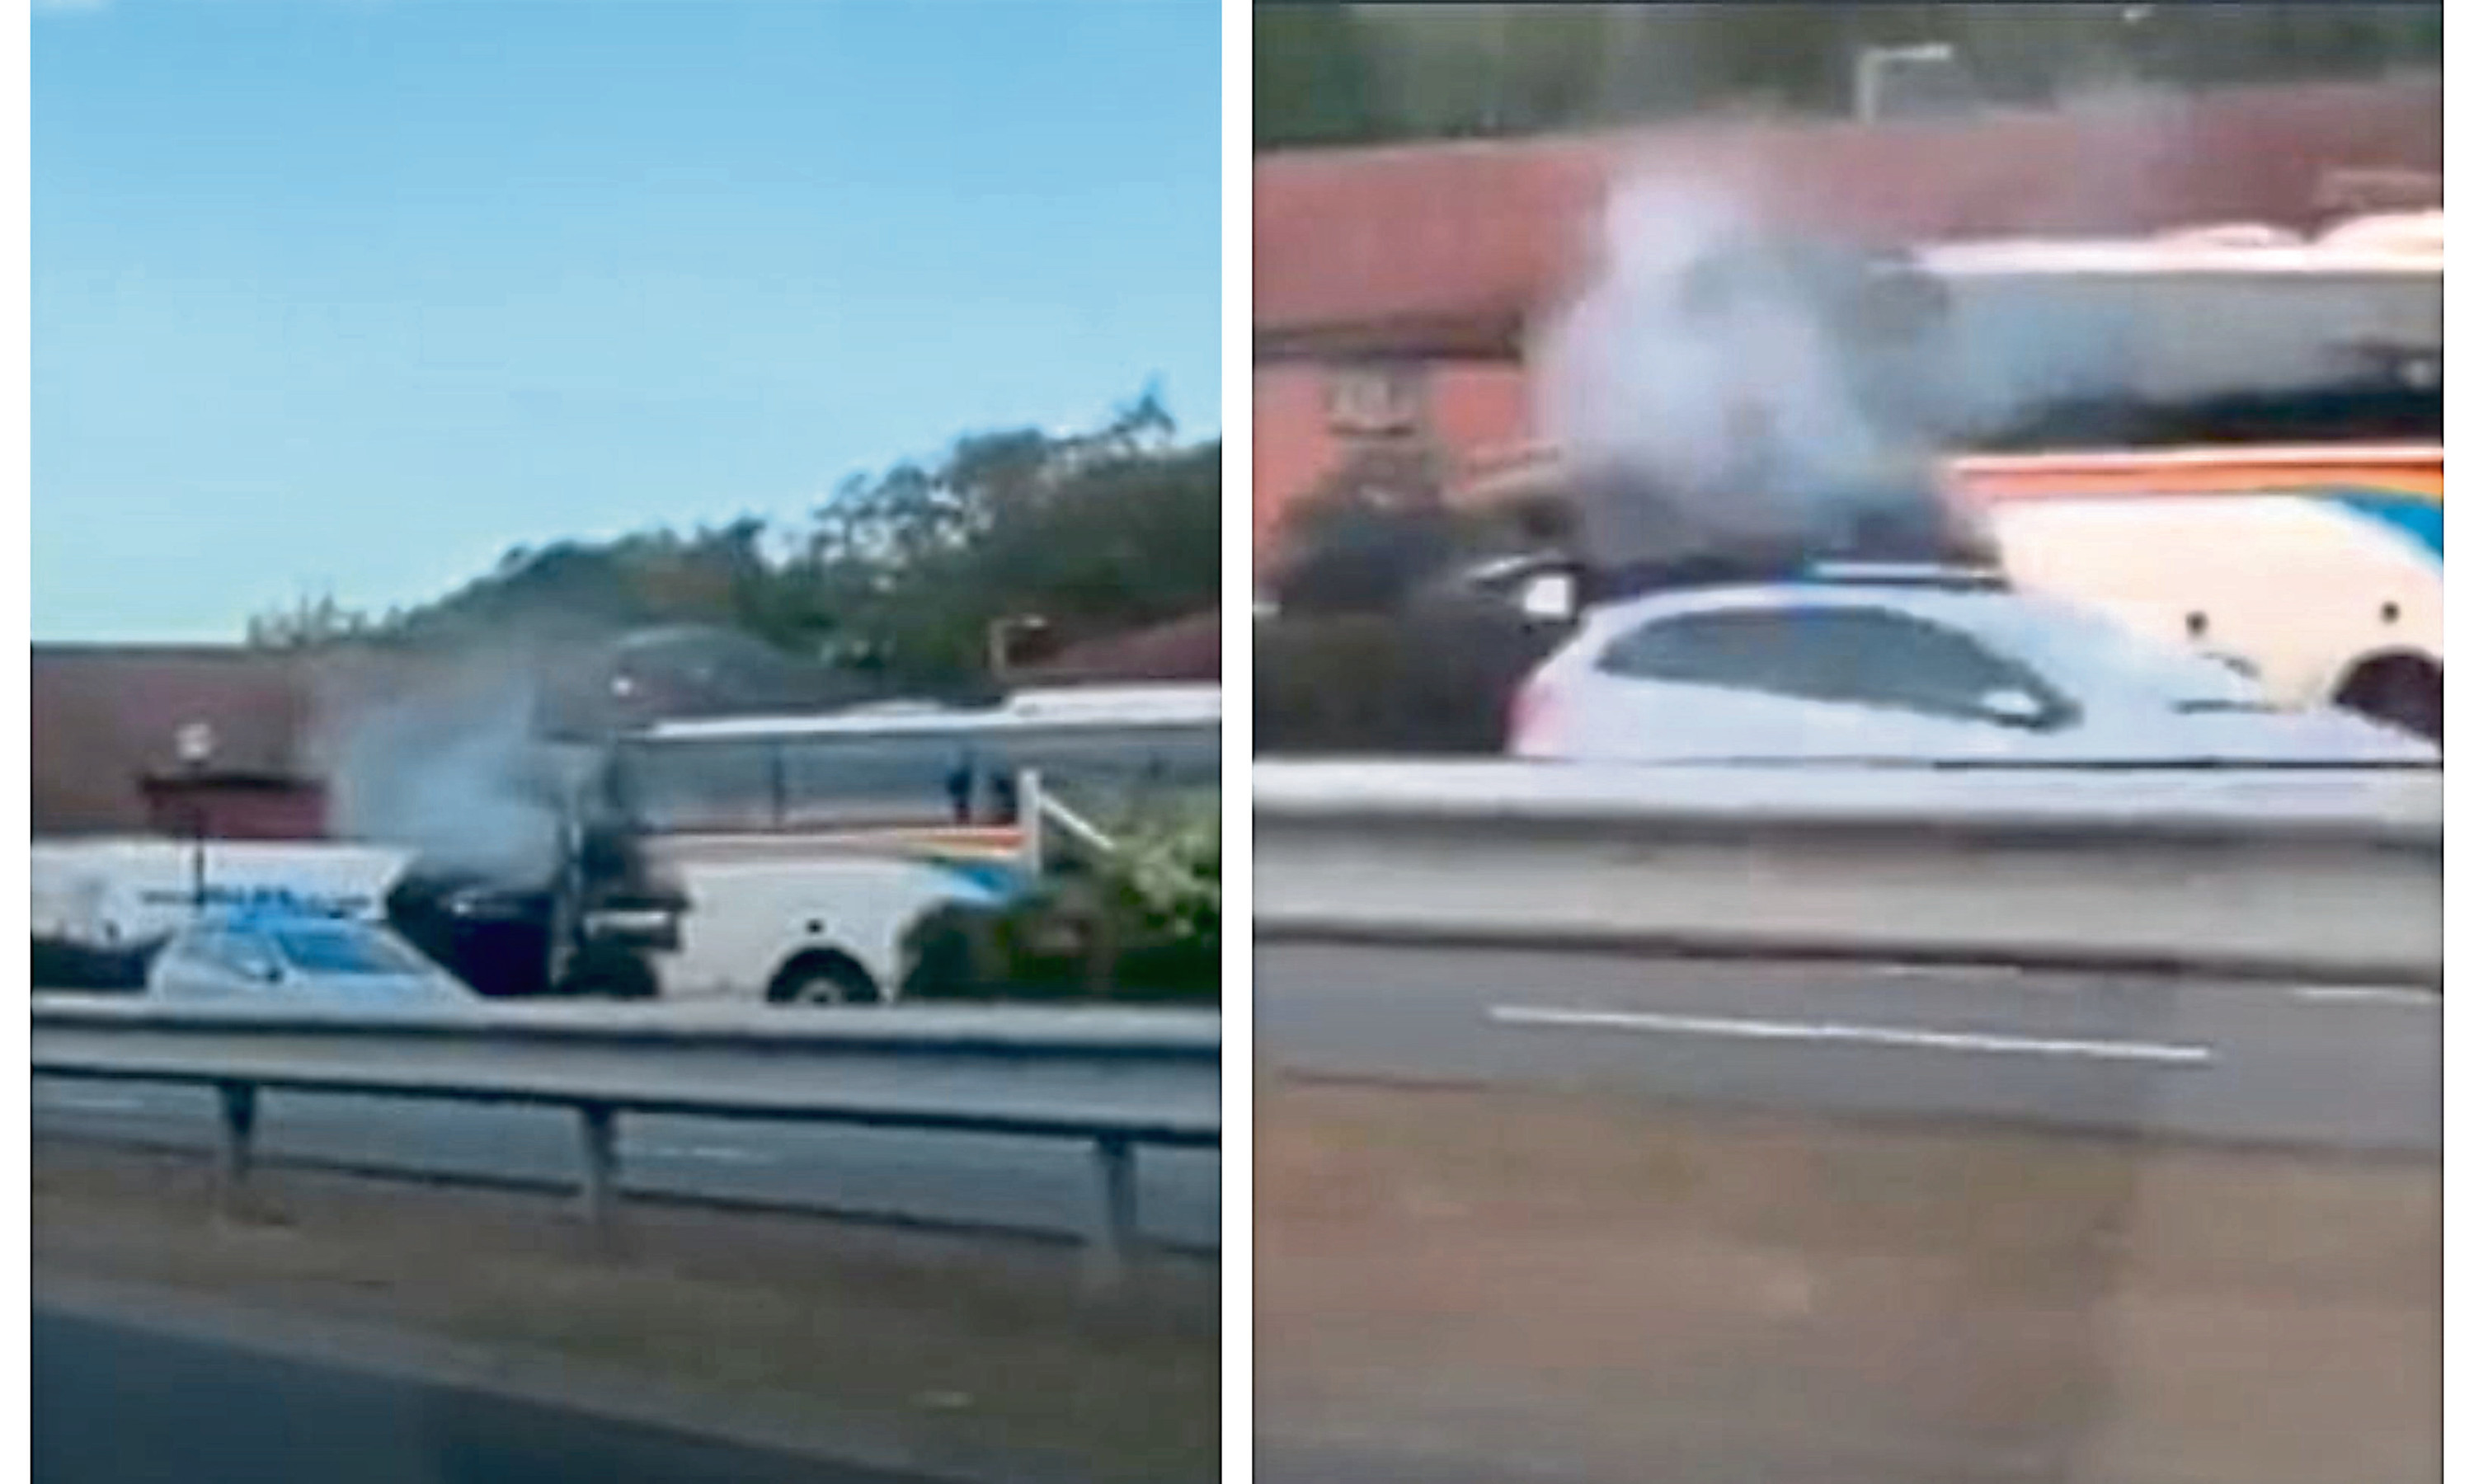 Fire crews were called out to a bus on fire in Dundee on Saturday morning.  The single decker bus caught fire near the BP filling station on Kingsway West just after 8am.